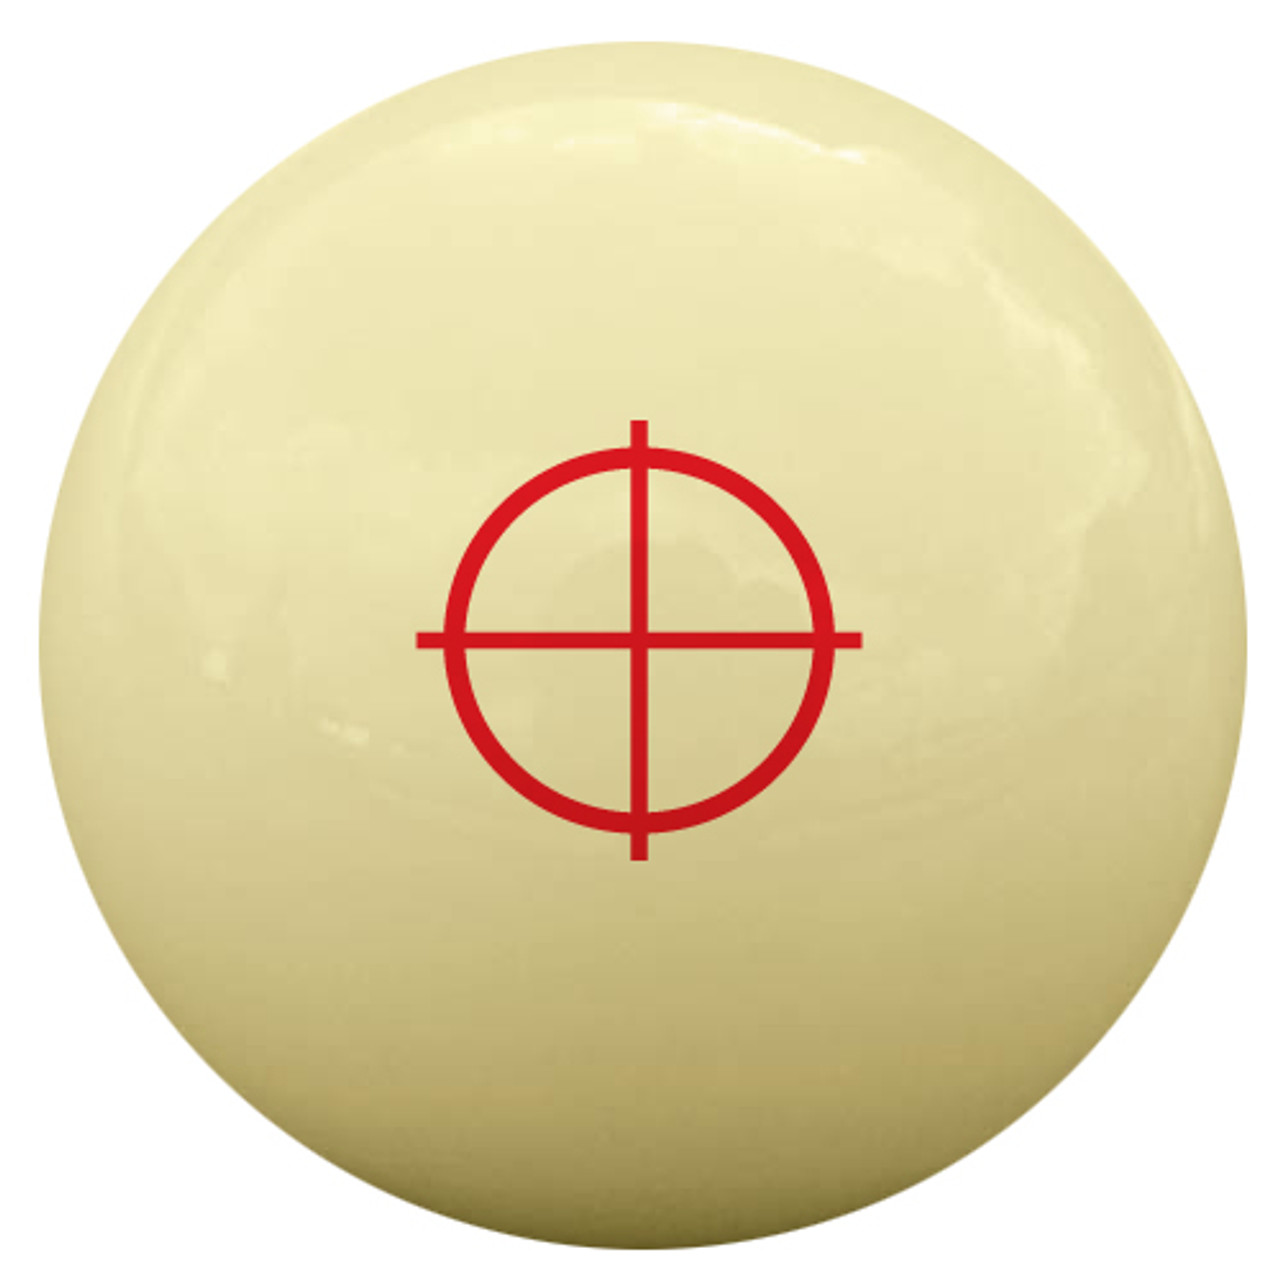 Take Aim Cue Ball